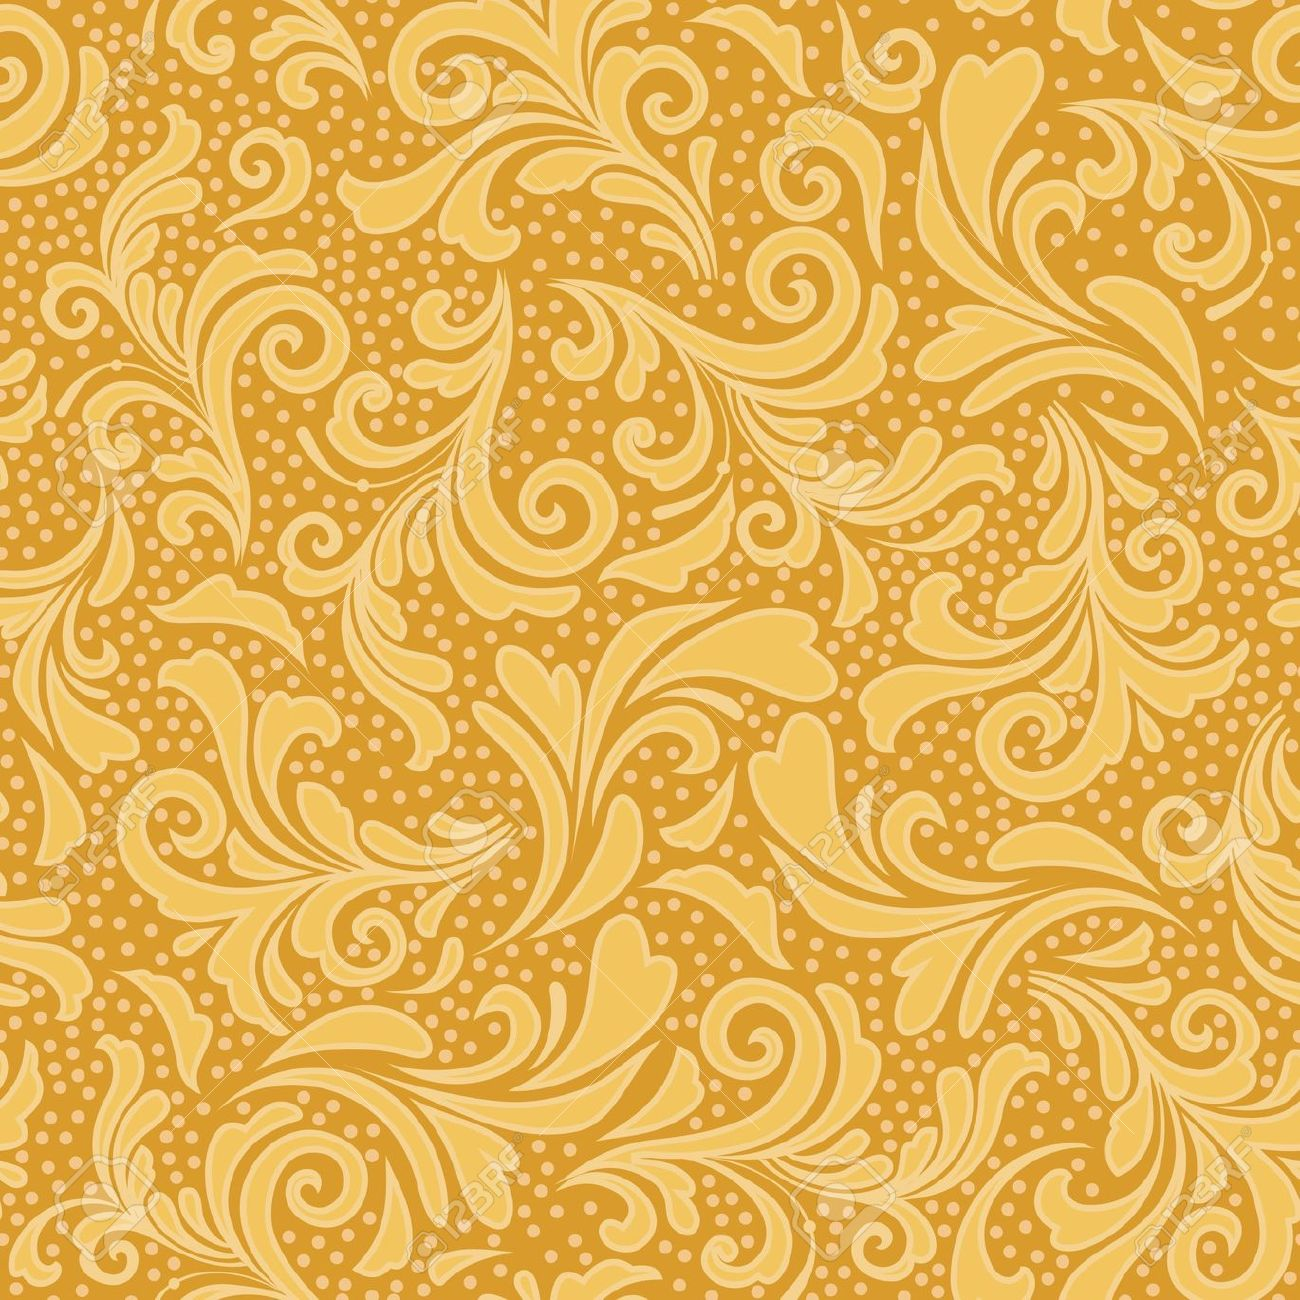 Floral Seamless Ornament In Gold Yellow Royalty Free Cliparts